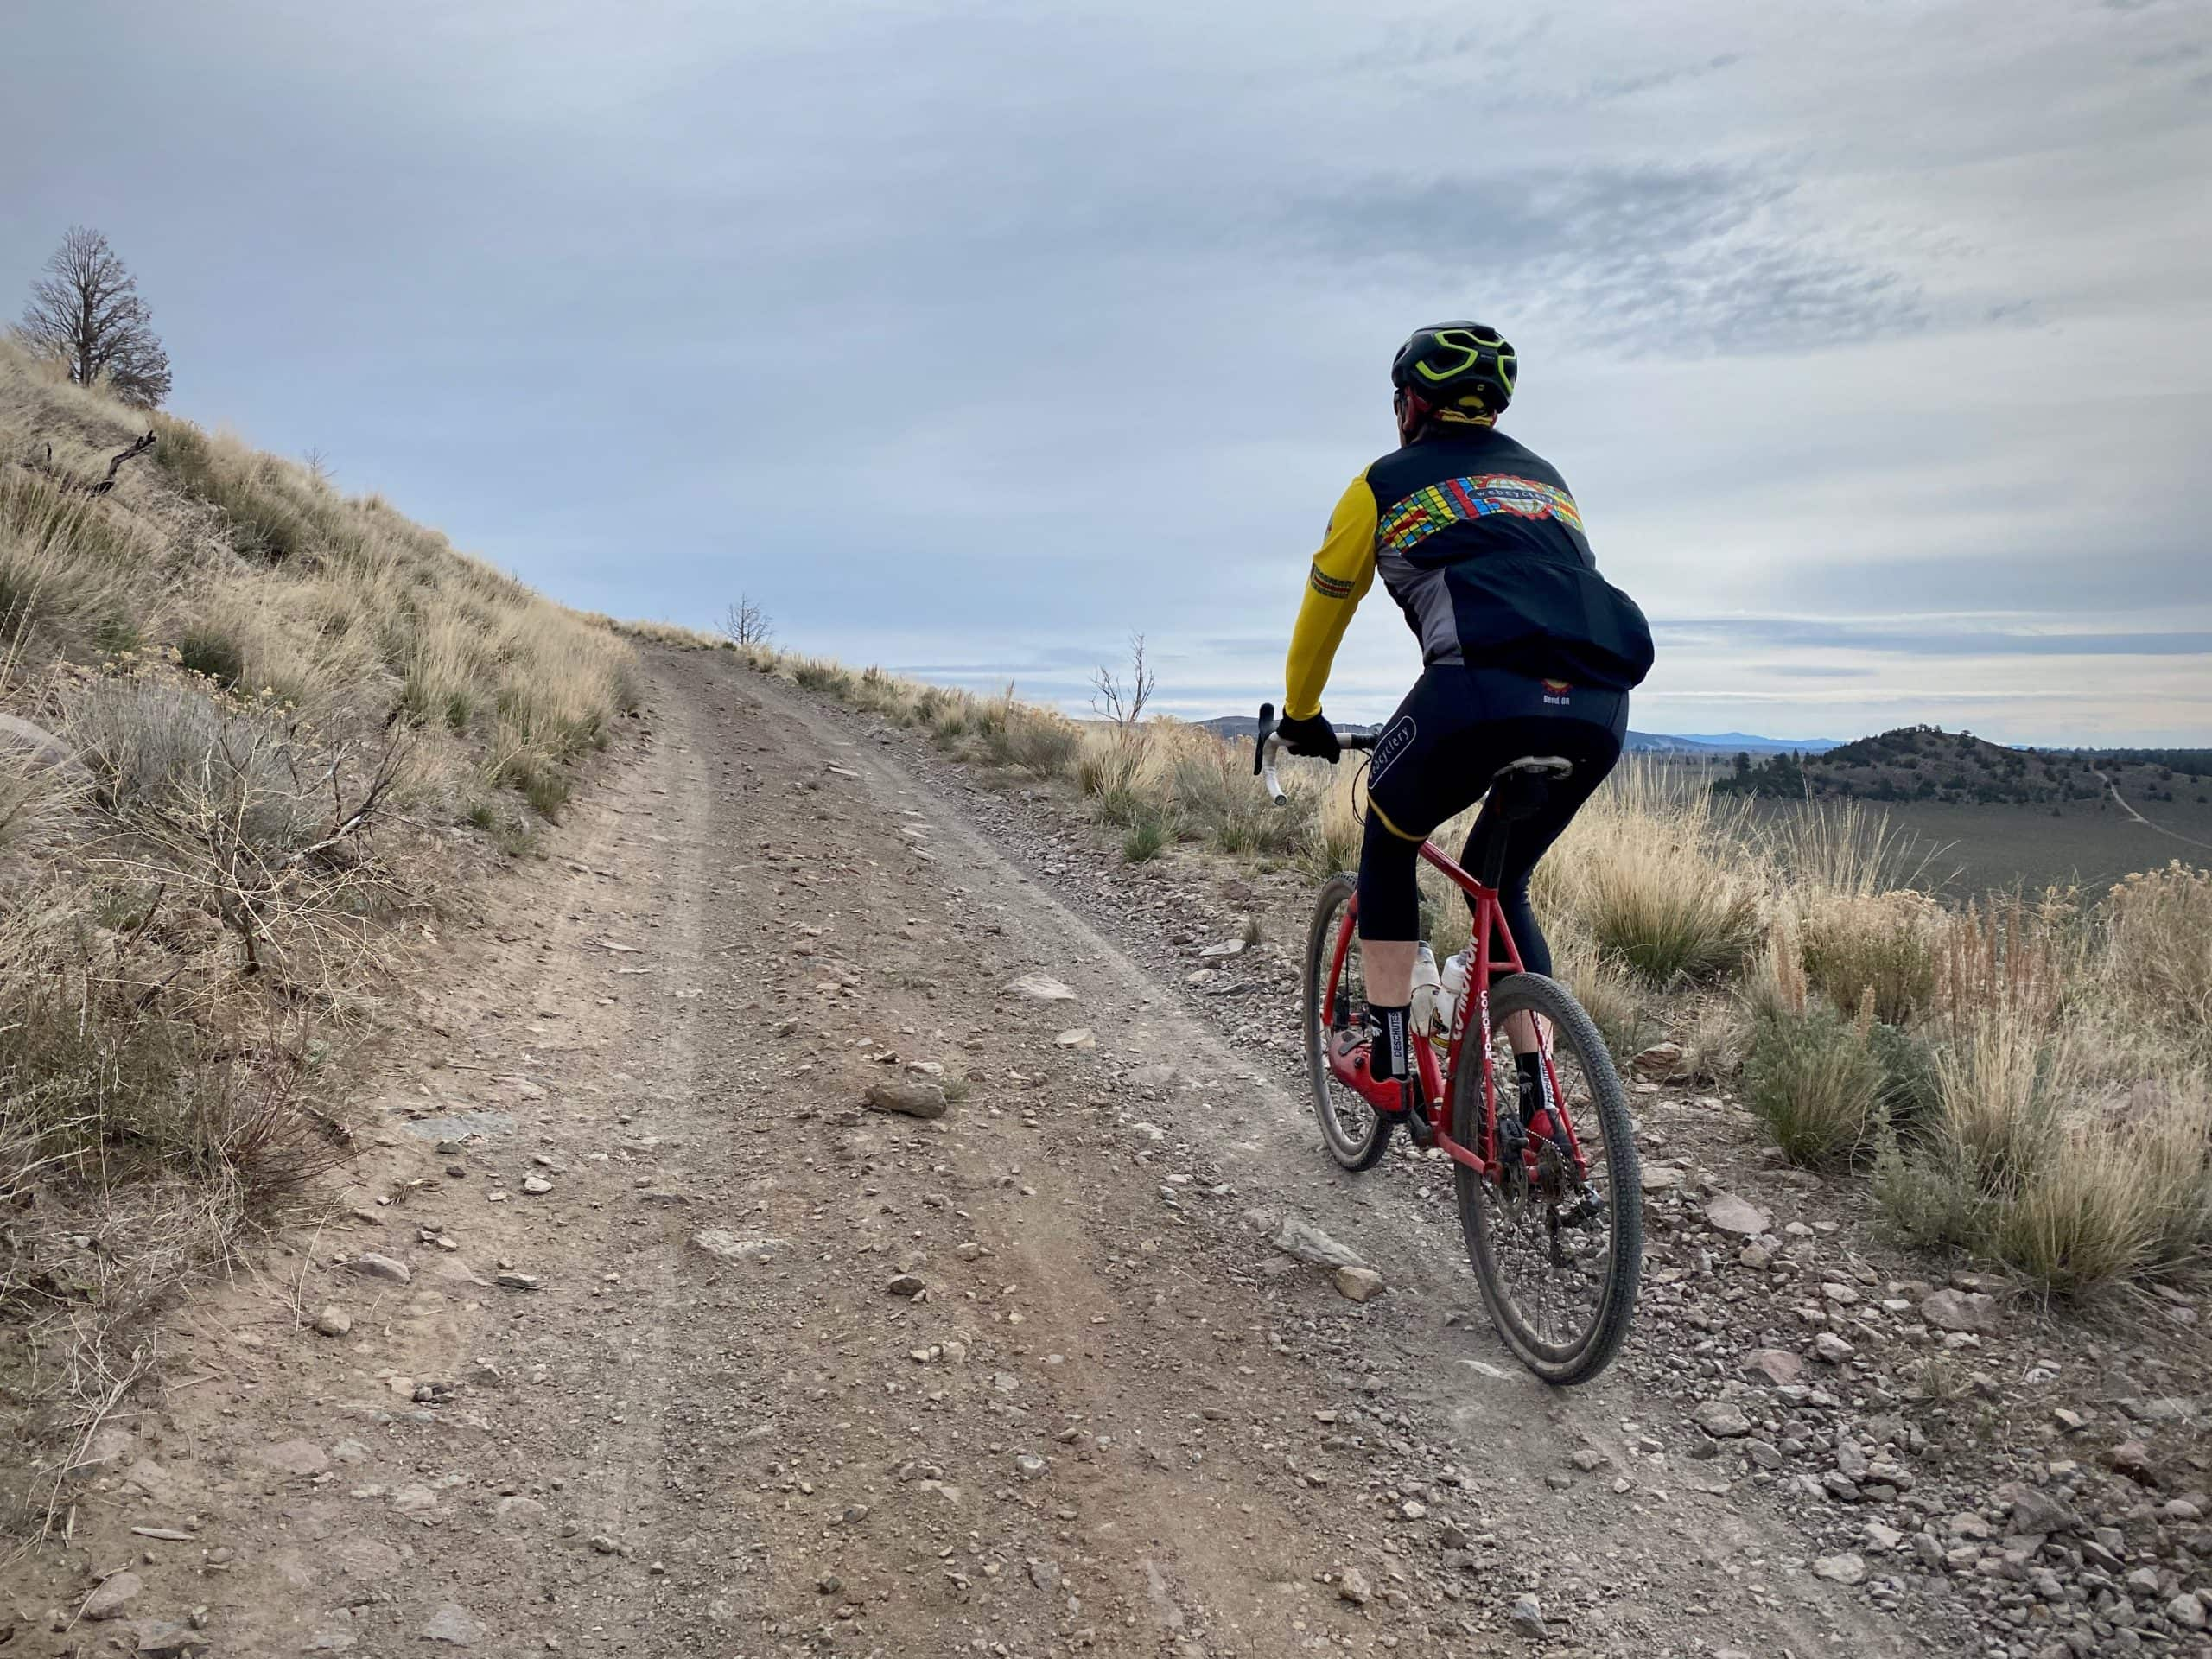 Cyclist on the rugged climb to the top of Pine Mountain near Bend, Oregon.